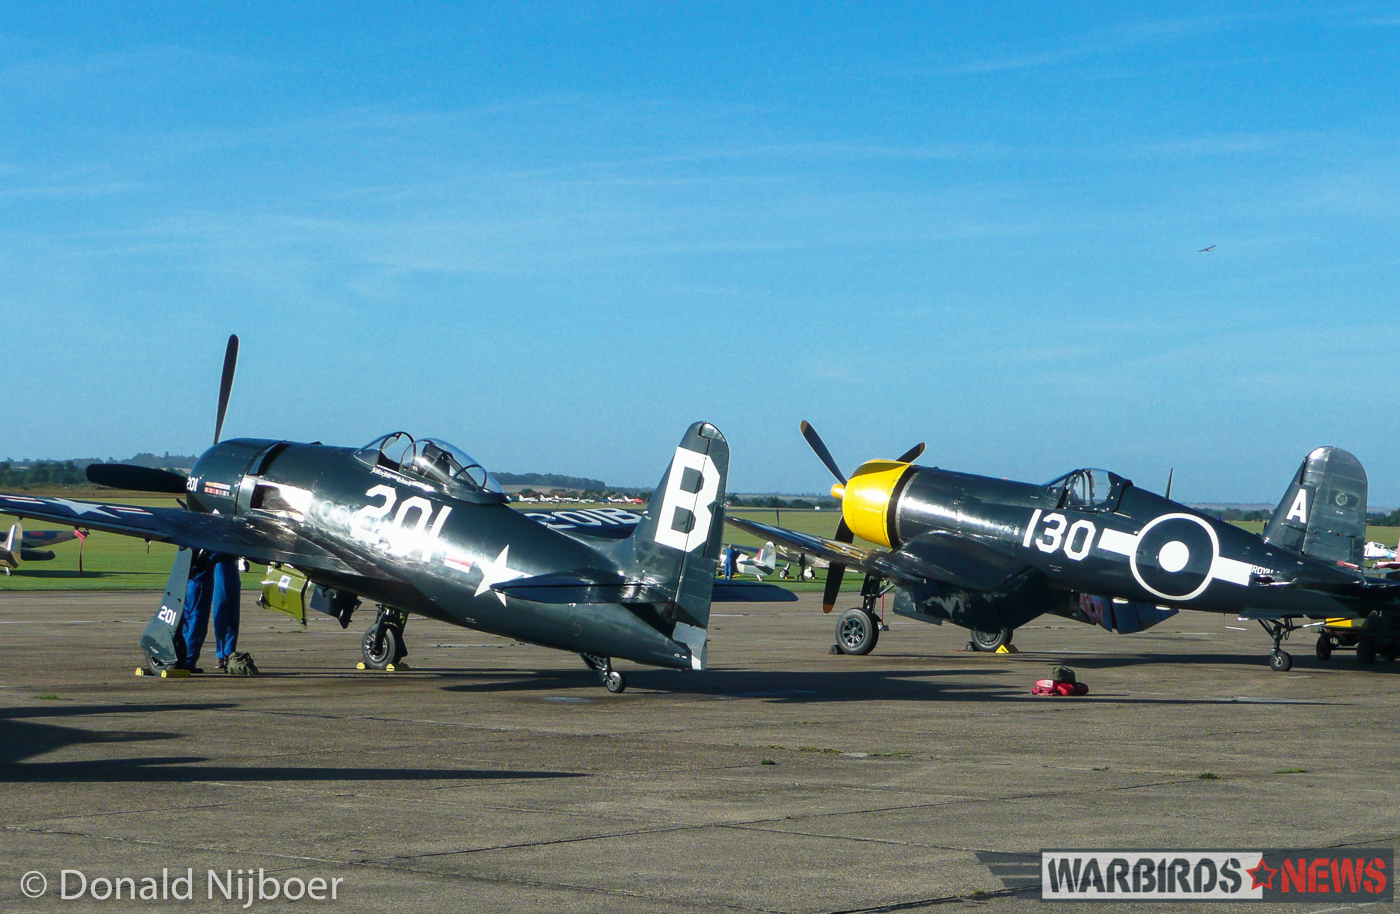 The Fighter Collection's Grumman F8F Bearcat sits beside their FG-1D Corsair on the tarmac at Duxford during the Meet the Fighters air show. The Bearcat opened the show paired up with a Hawker Fury. (photo by Donald Nijboer)